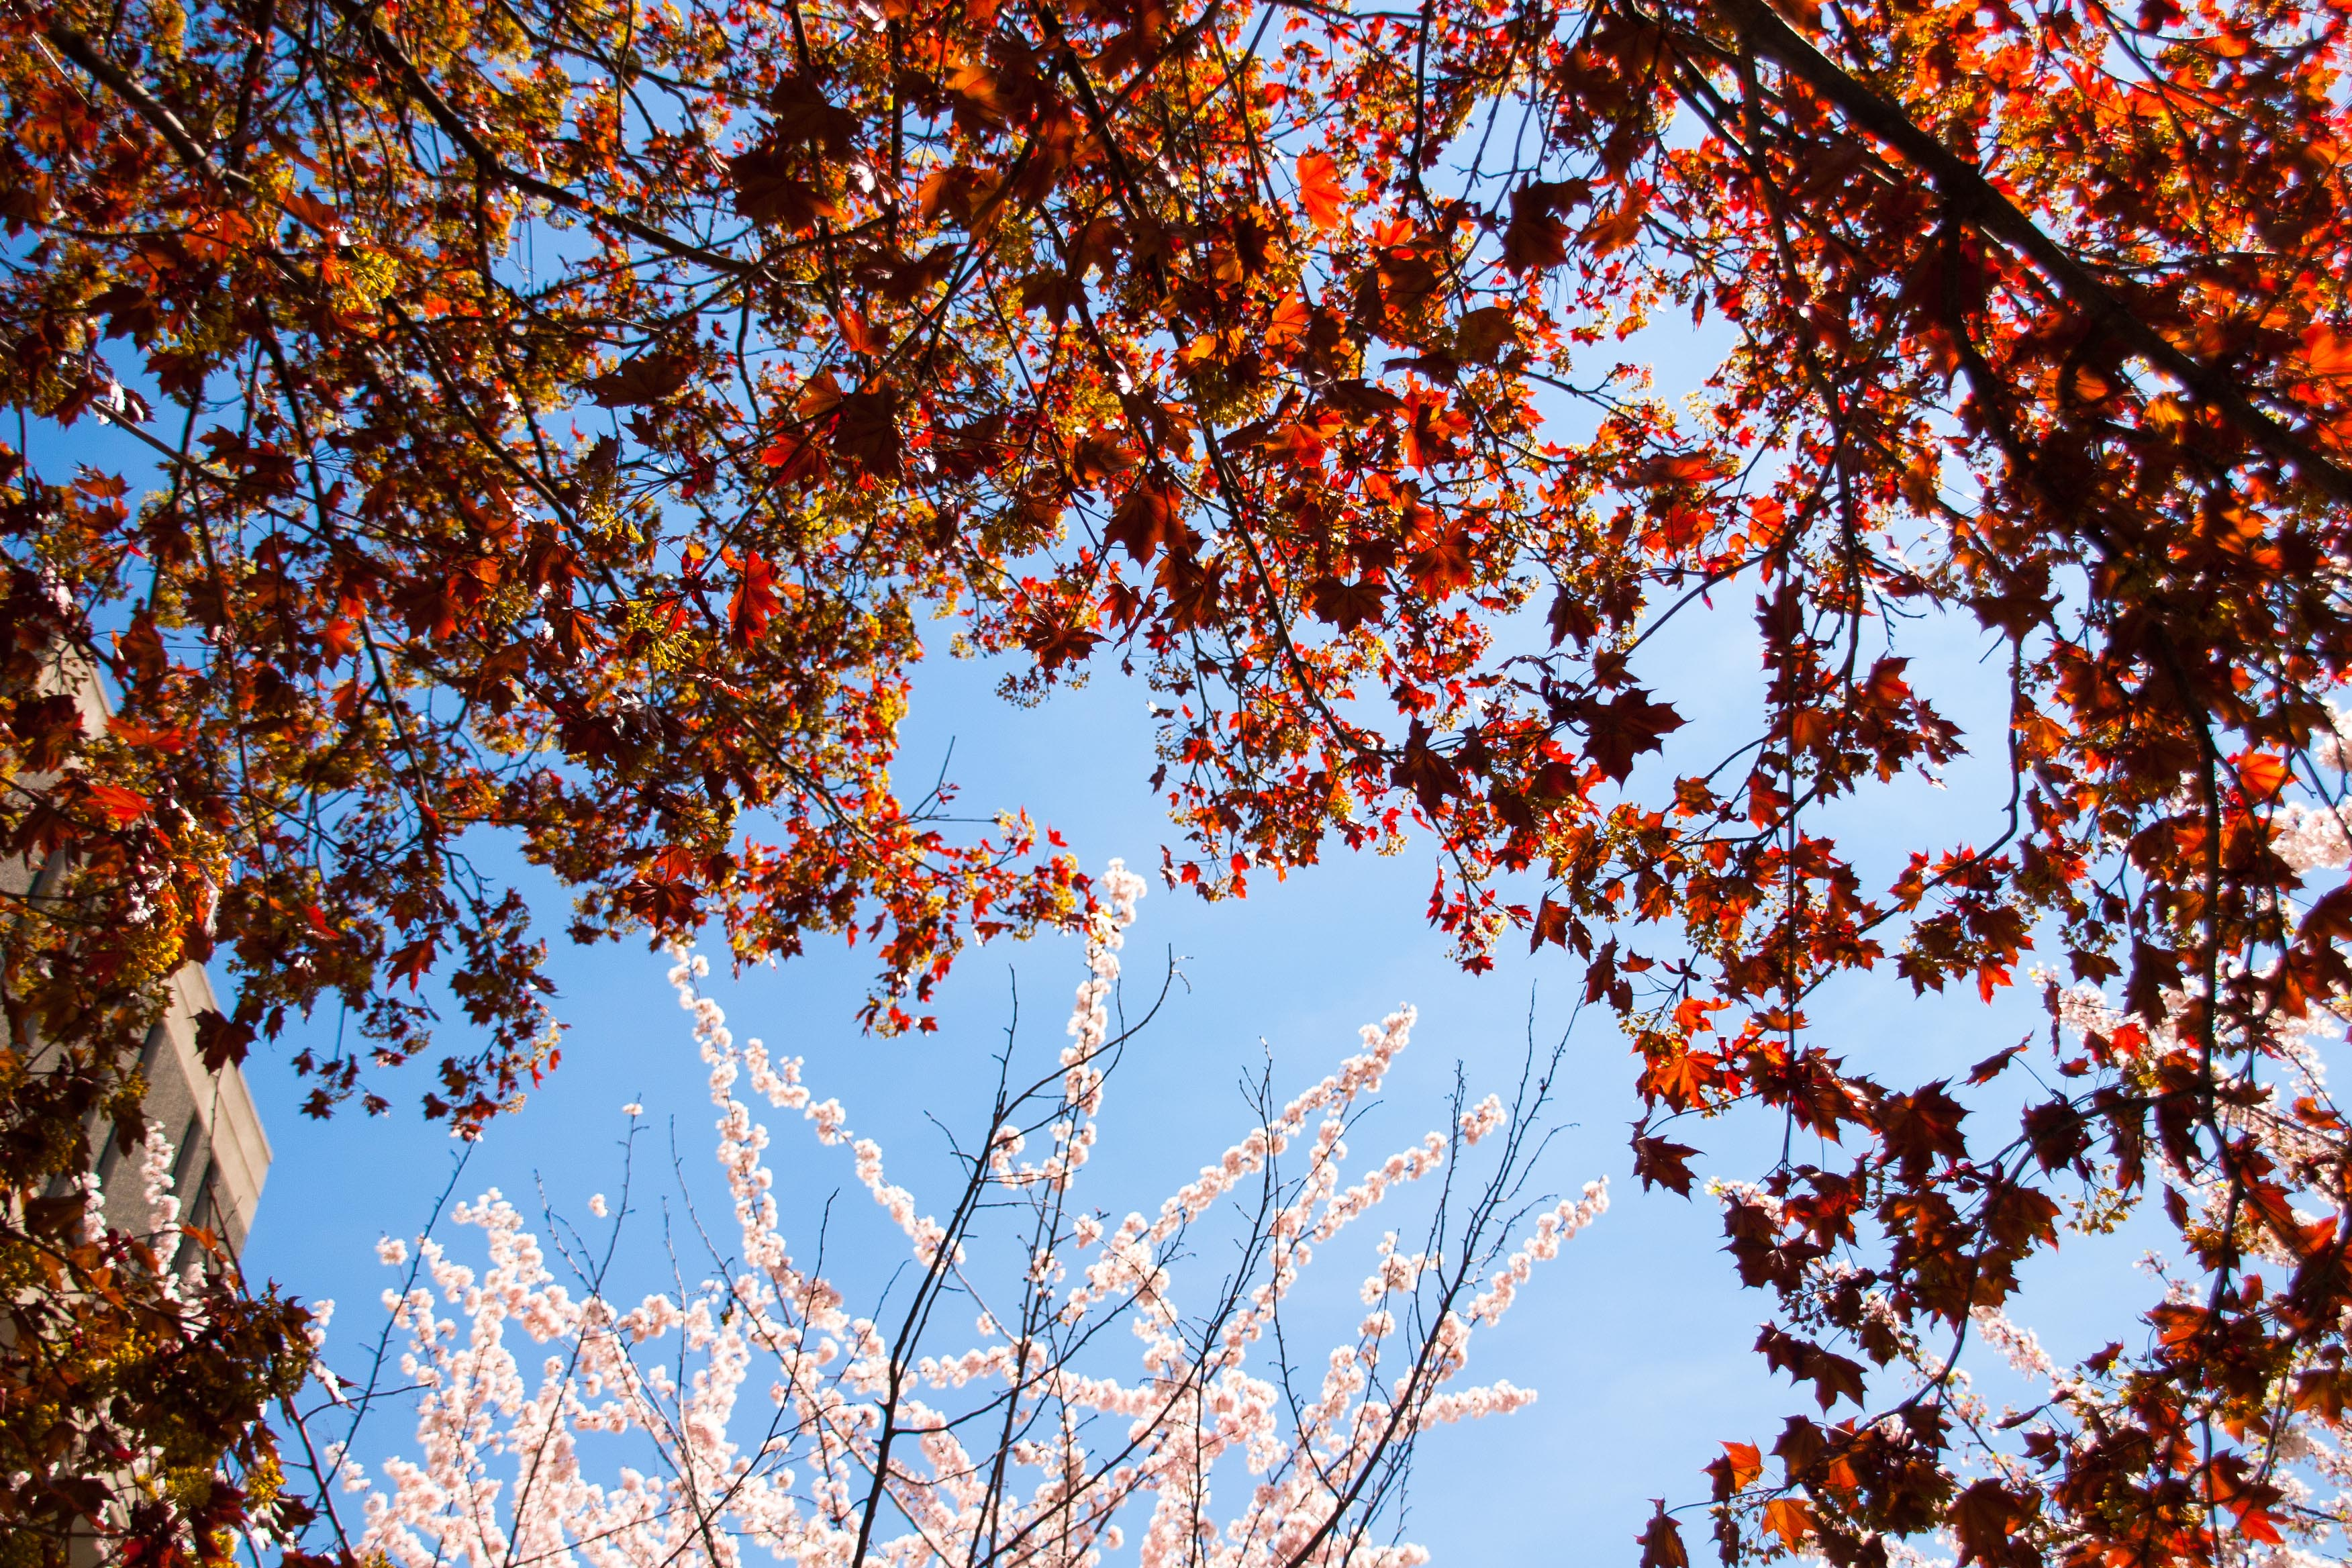 tree branches - red leaves almost encircling cherry blossoms which appear in the top half of picture